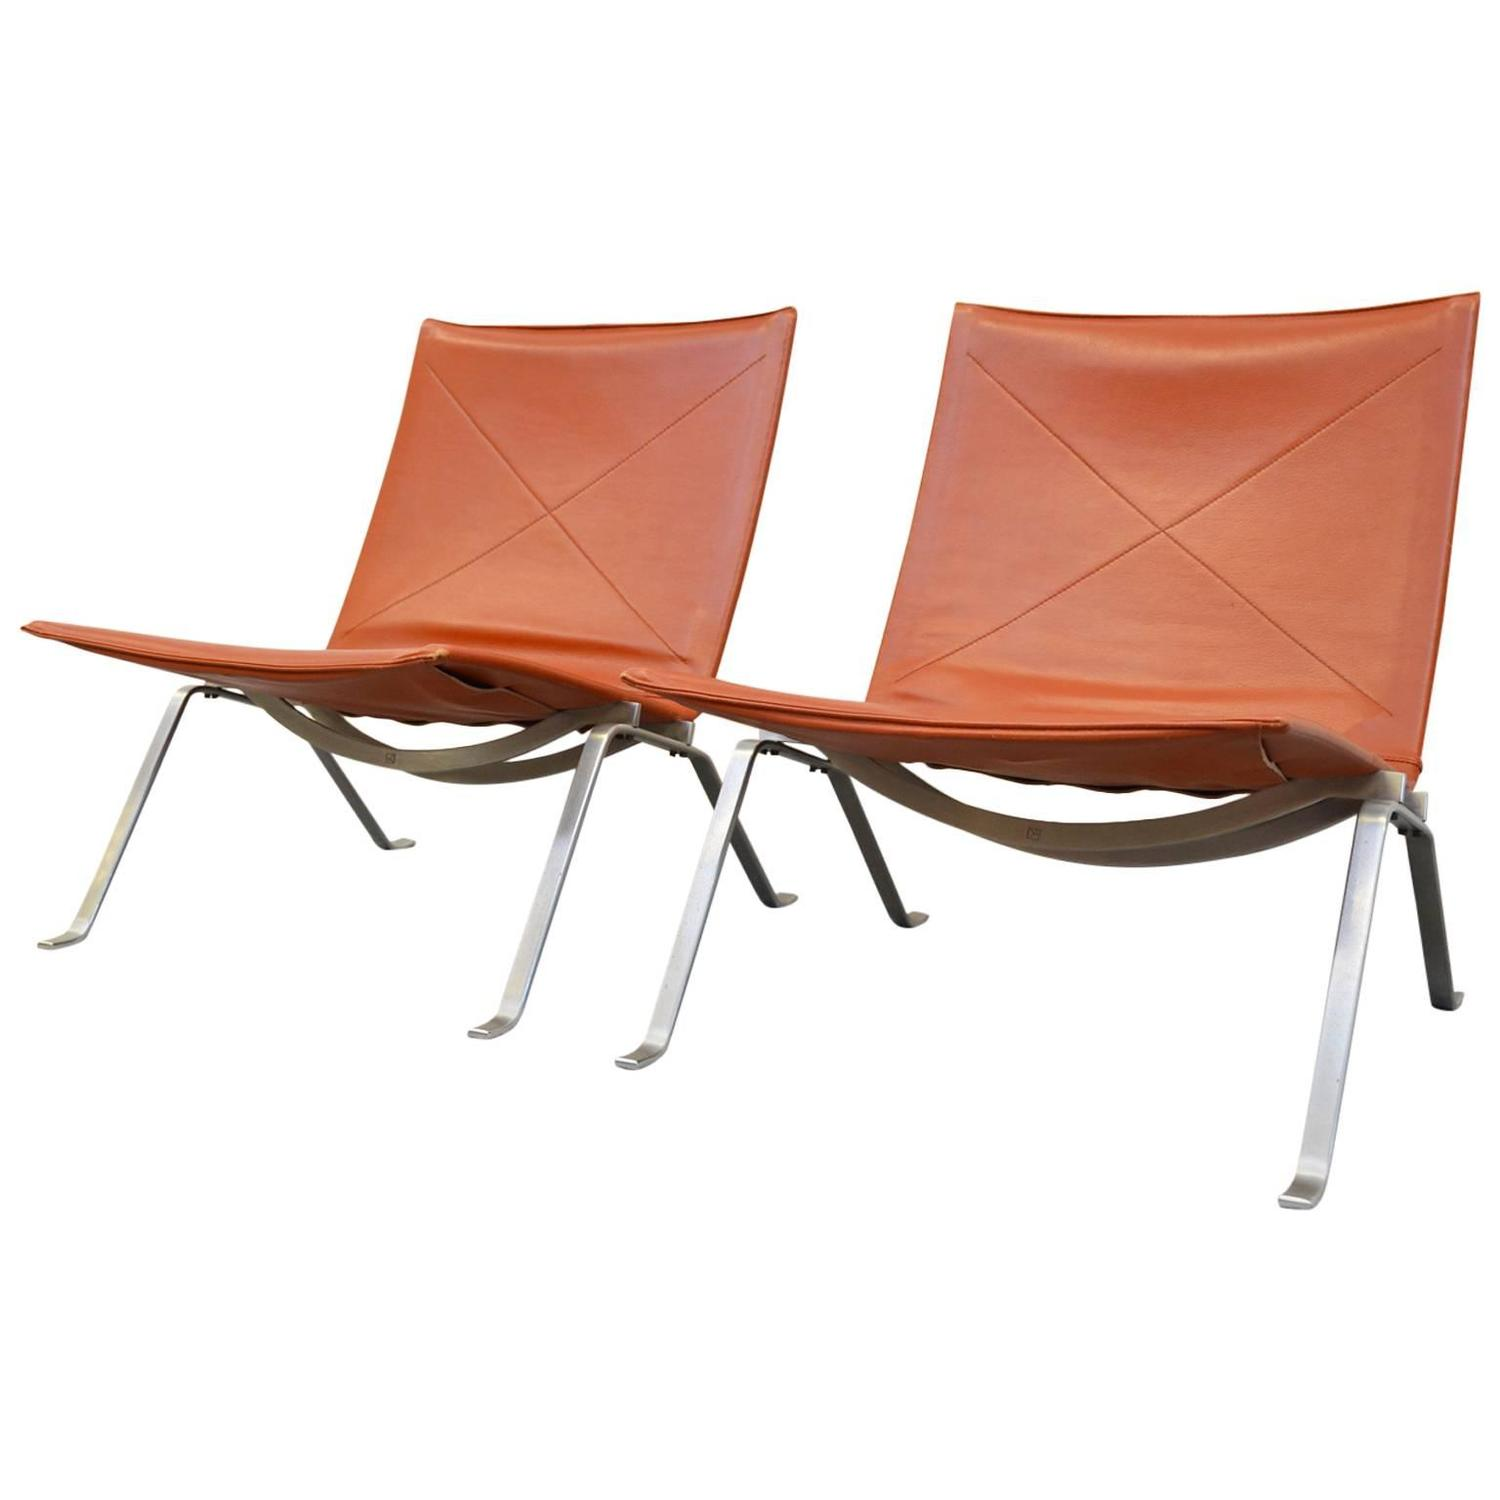 Pk22 Chair Pk22 Lounge Chairs By Poul Kjaerholm For E Kold